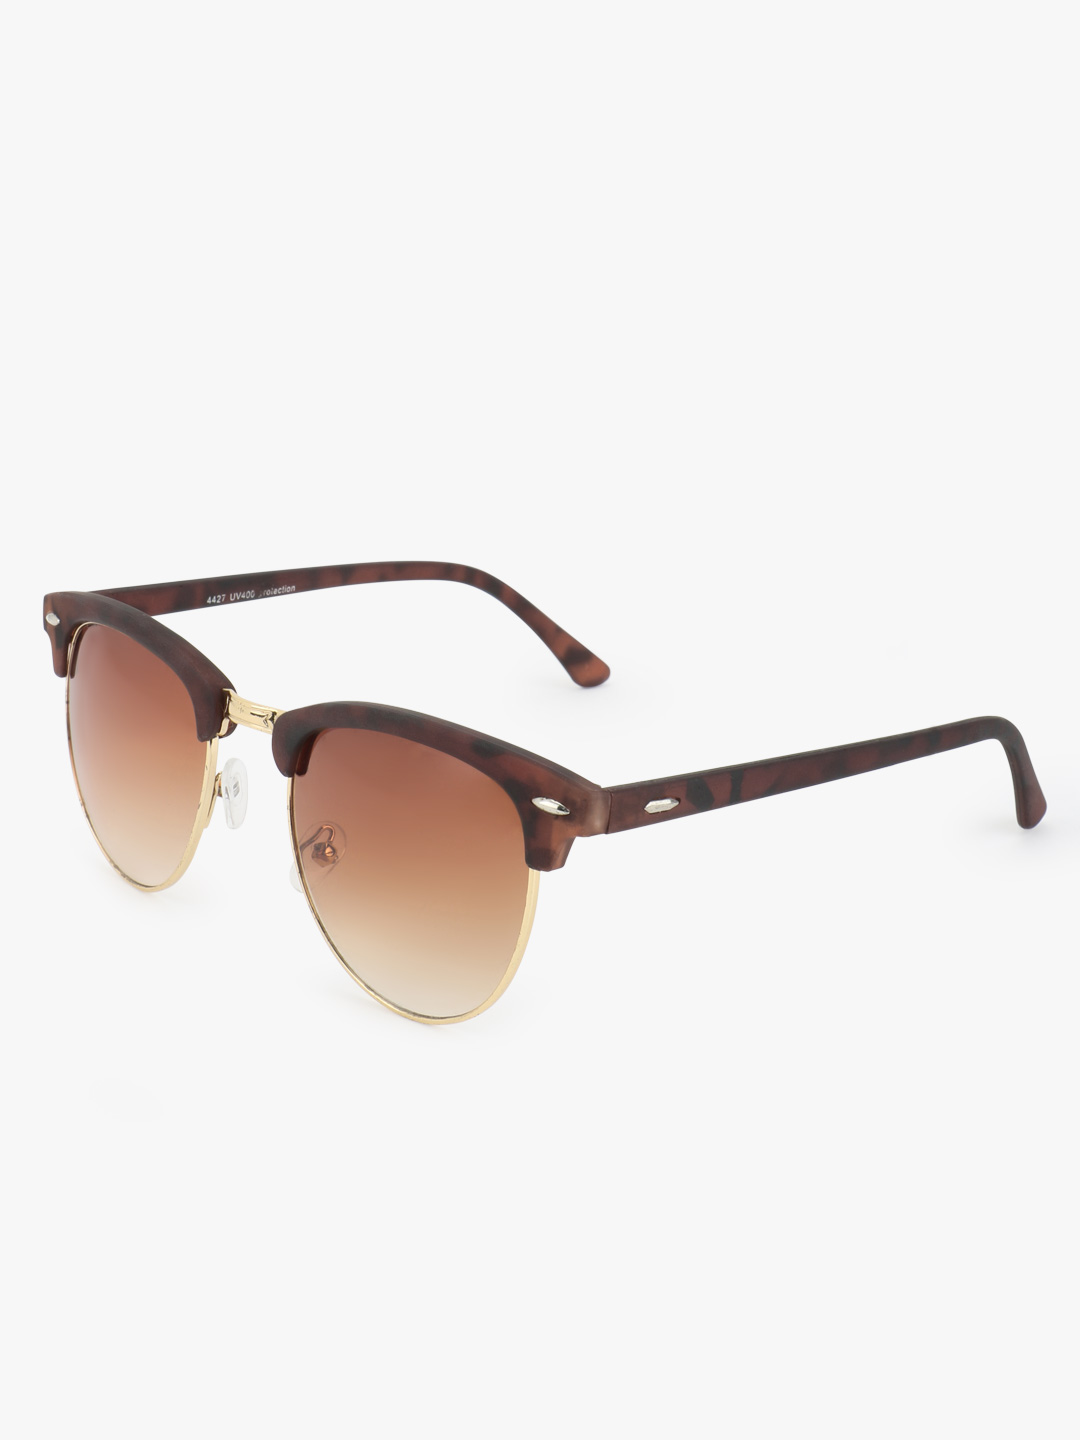 Kindred Brown Print Frame Retro Sunglasses 1